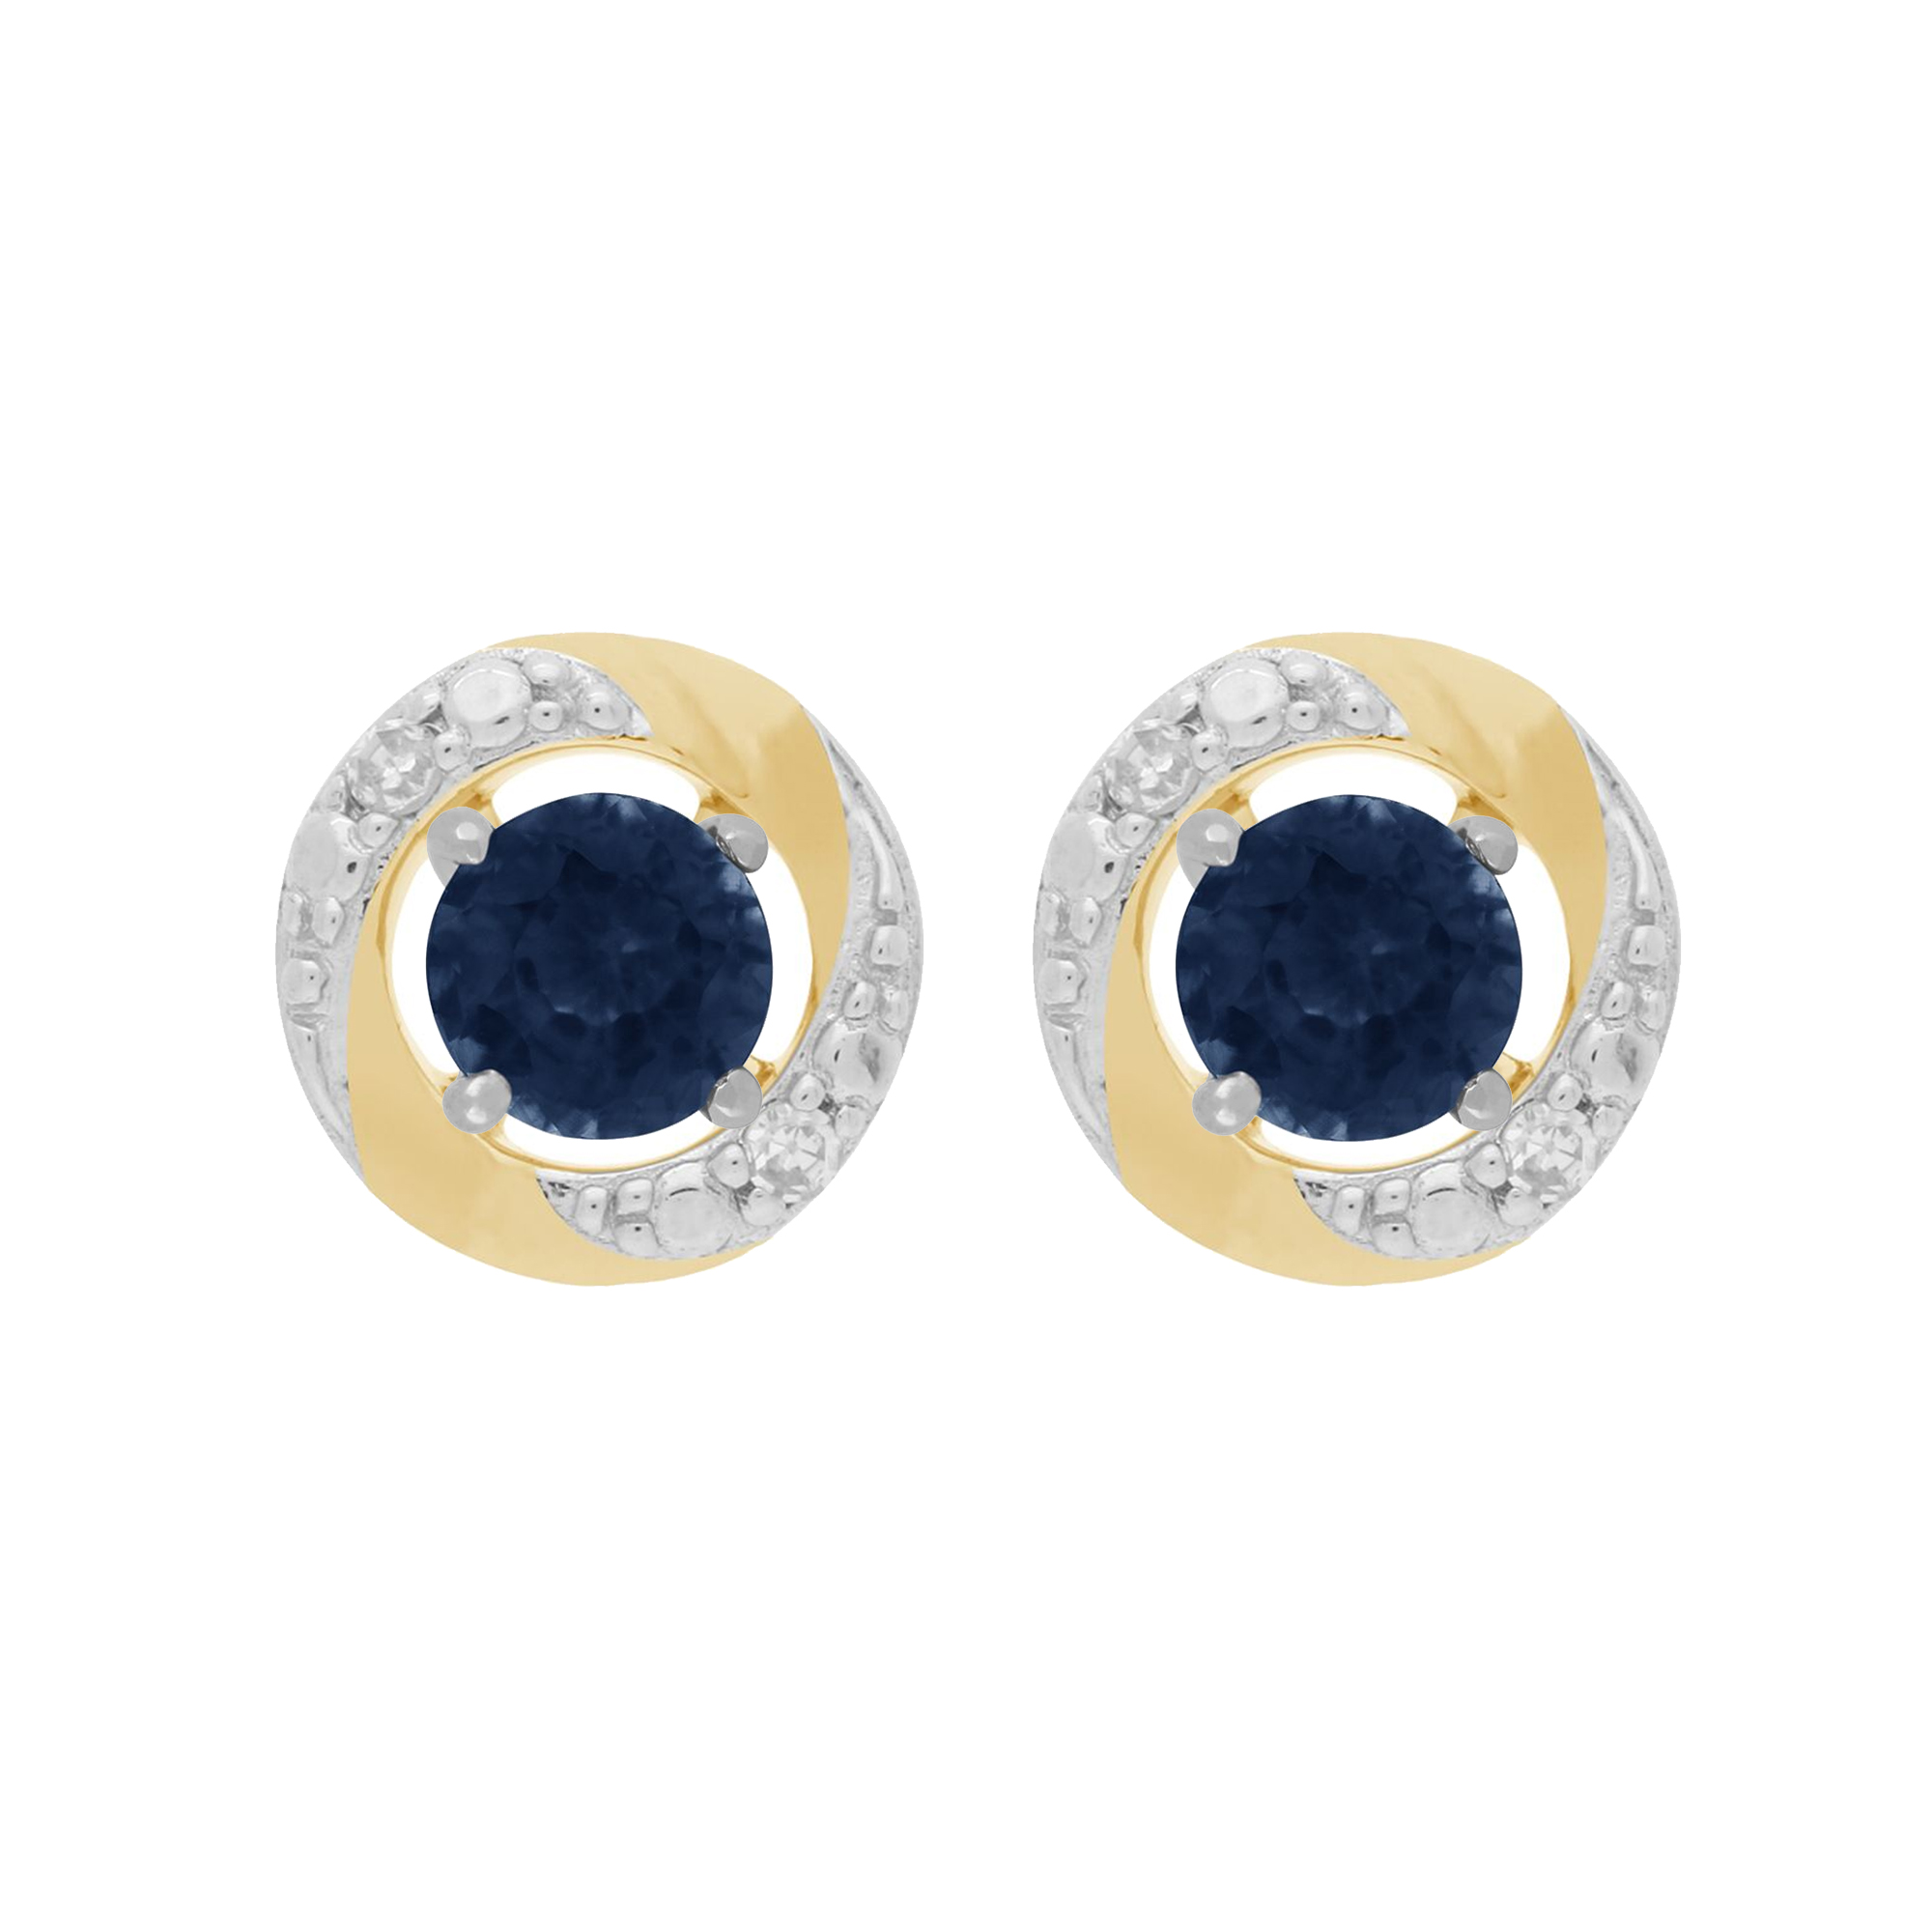 a790ba28c0be8 Details about 9ct White Gold Blue Sapphire Stud Earrings & Detachable  Diamond Halo Ear Jacket